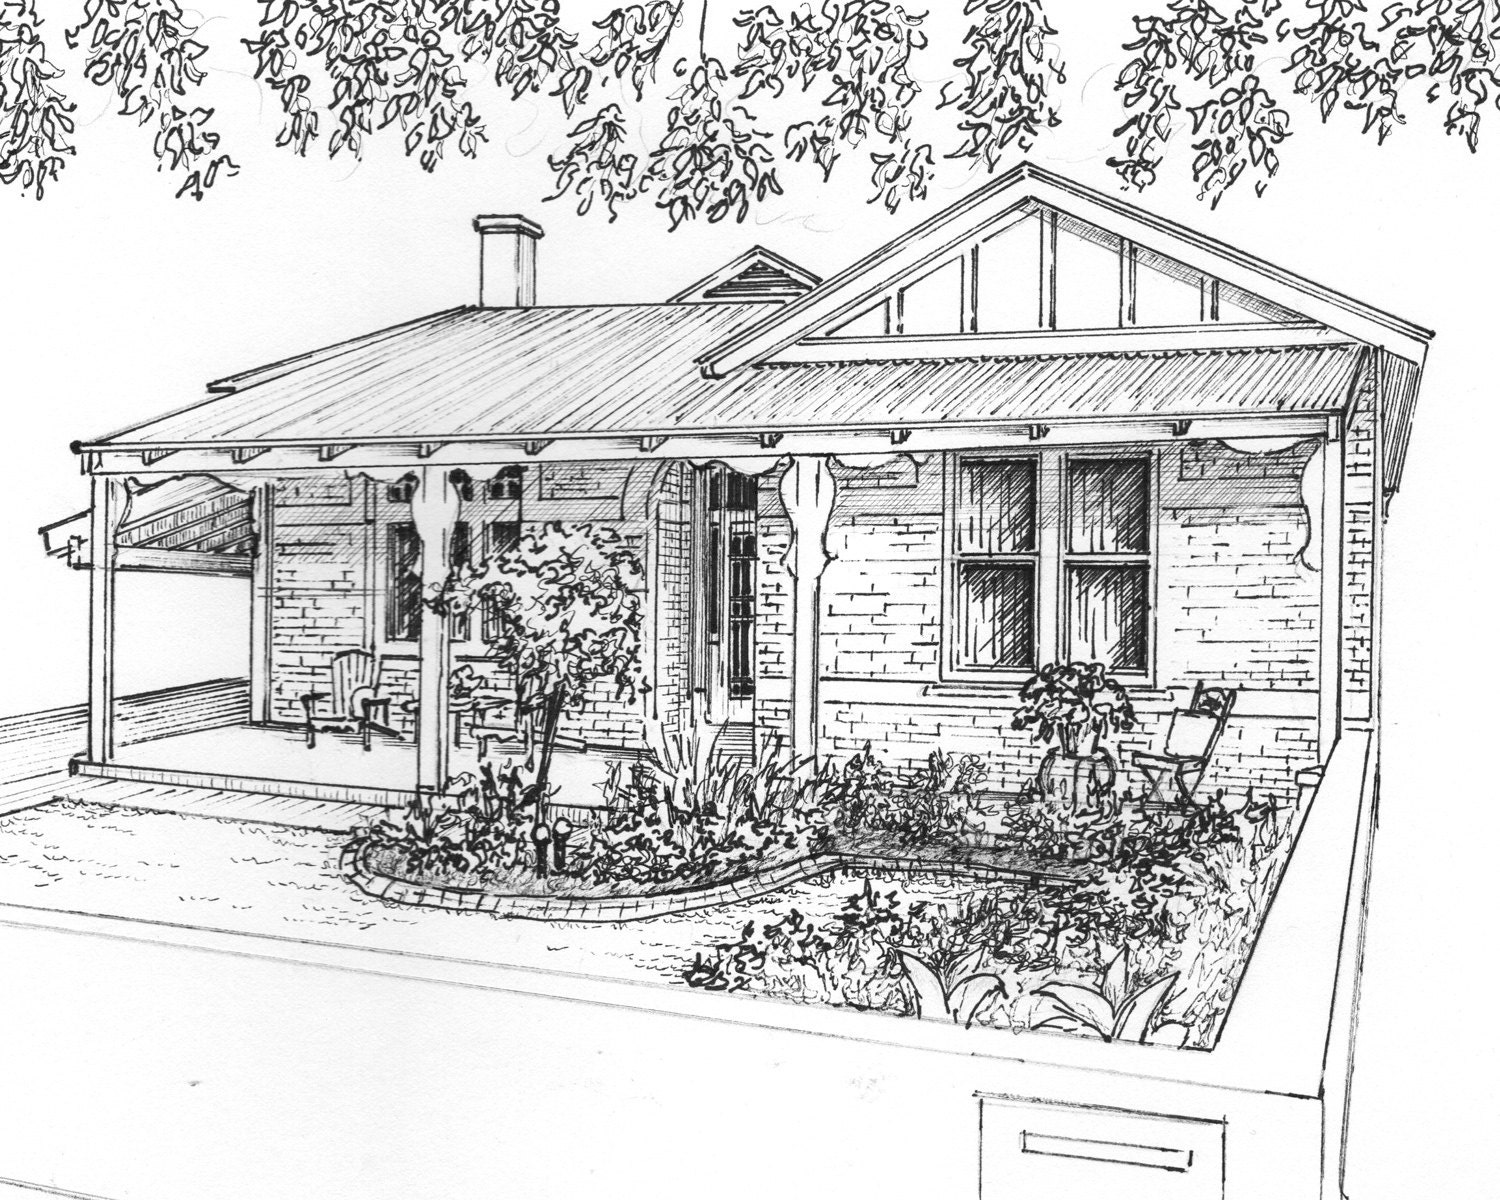 Line Drawing Of Your House : Custom house drawing in ink architectural sketch of your